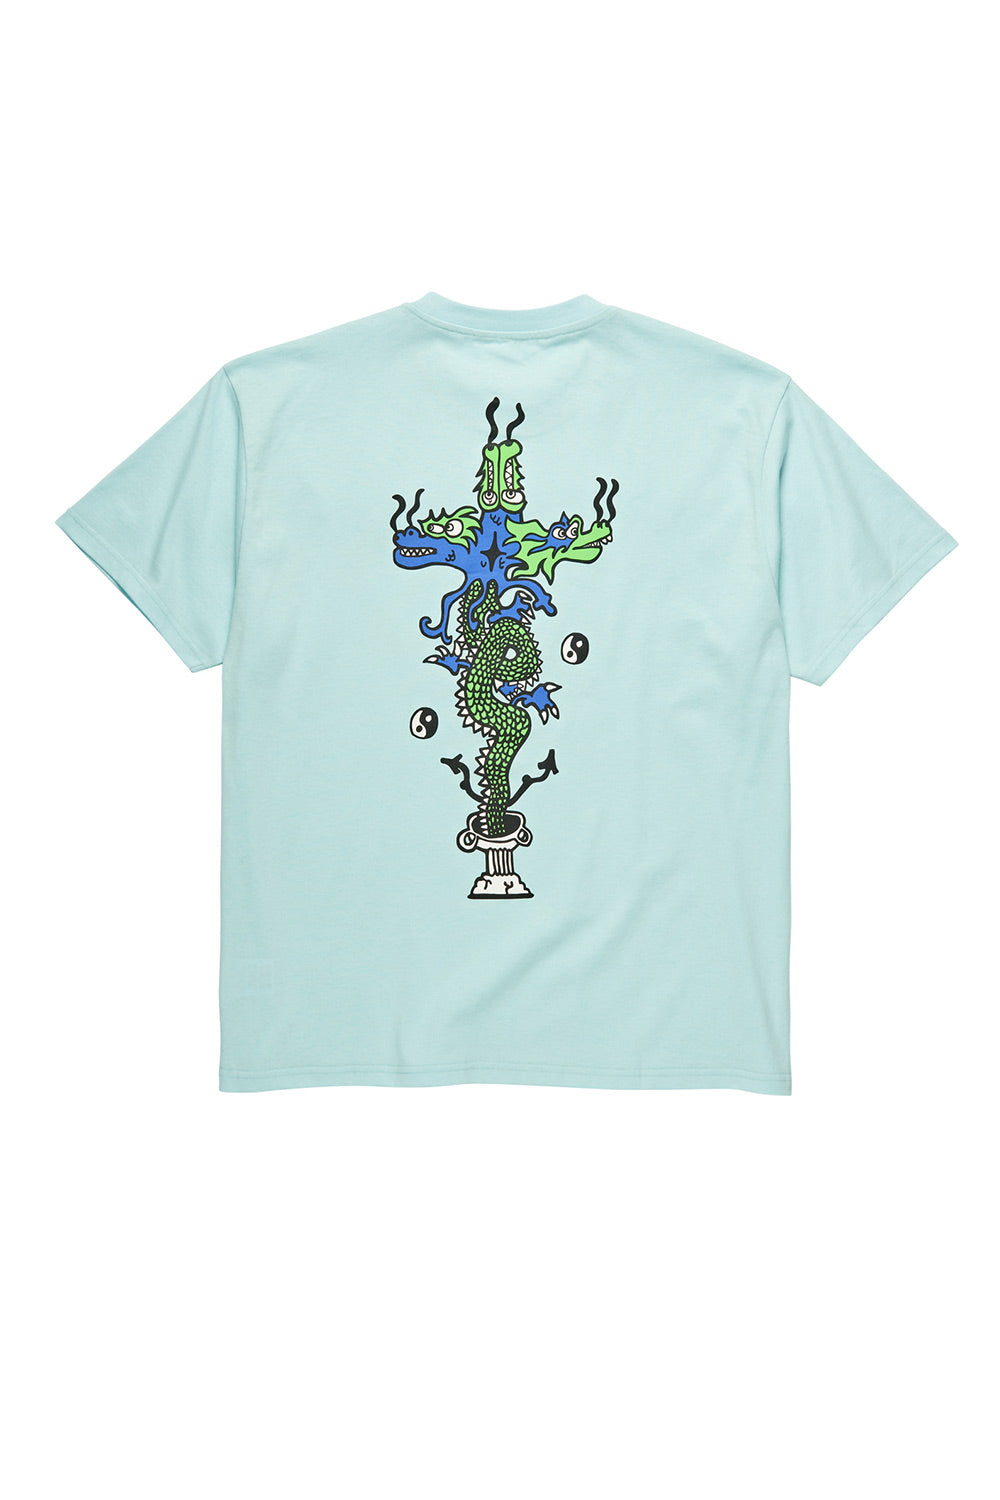 Polar Skate Co Dragon Tee - Aquamarine | Polar Skate Co Online